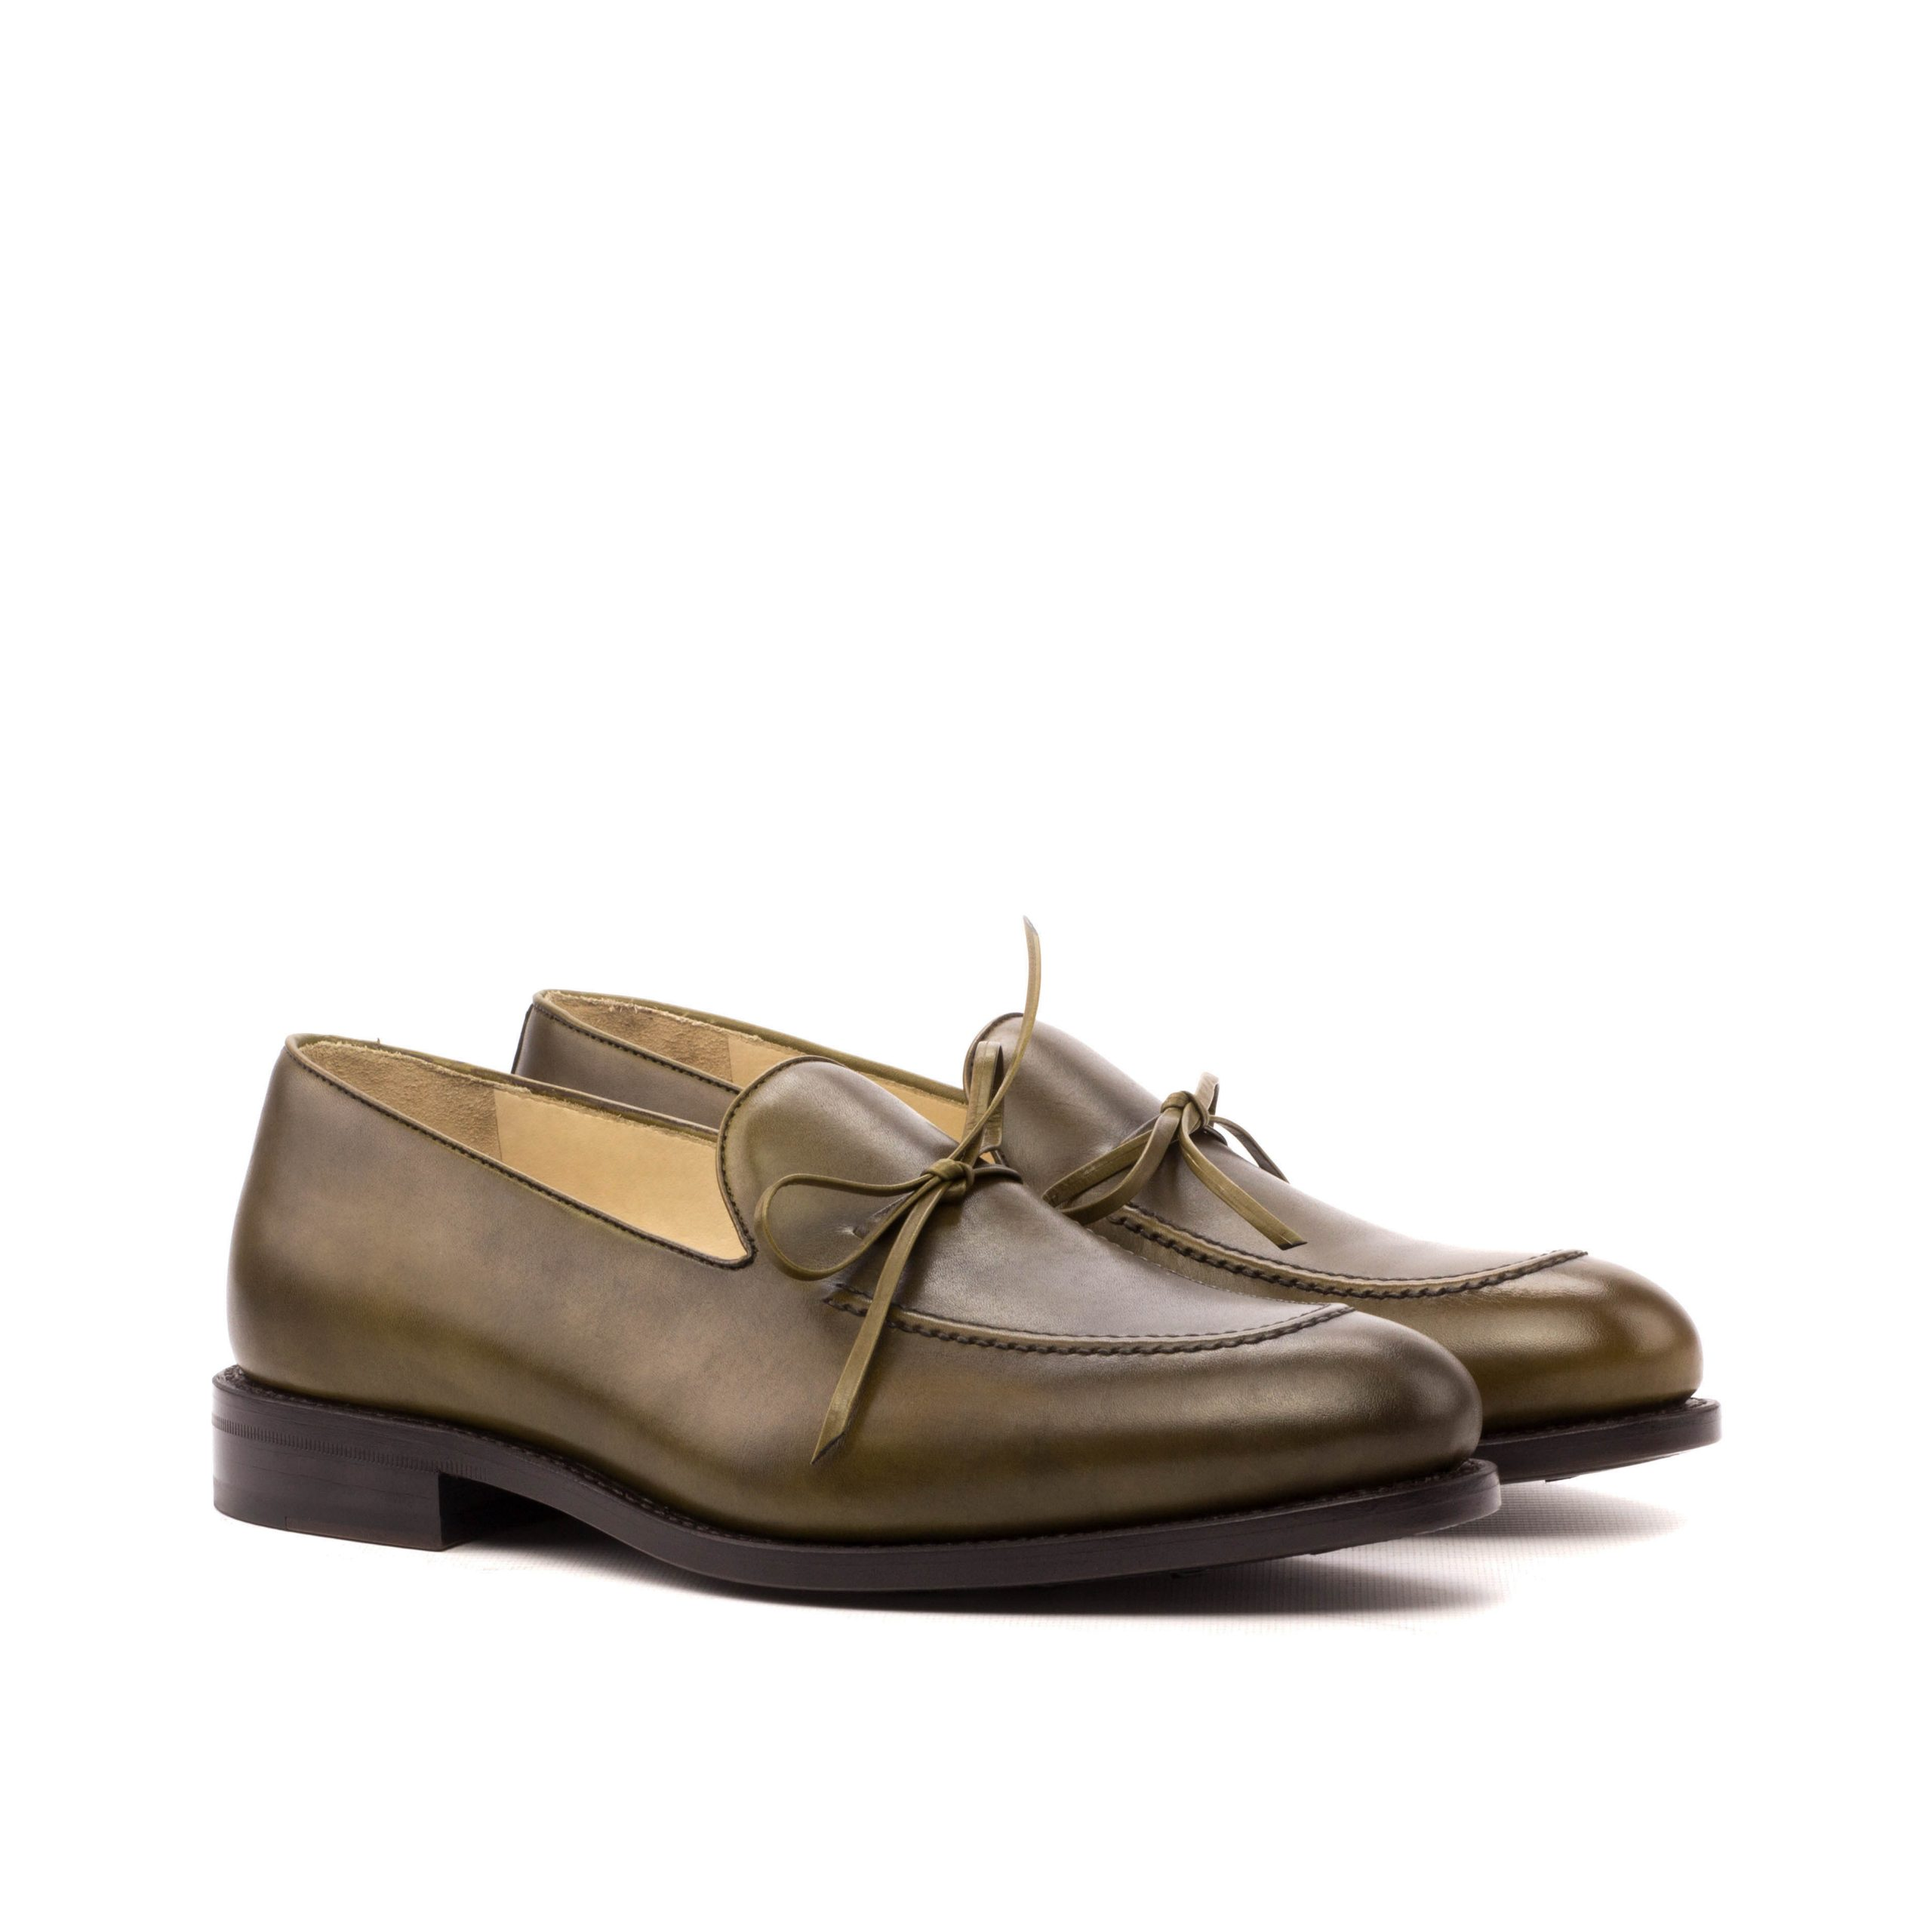 Loafer Bow Goodyear Welted - Painted Calf Olive-Ang5